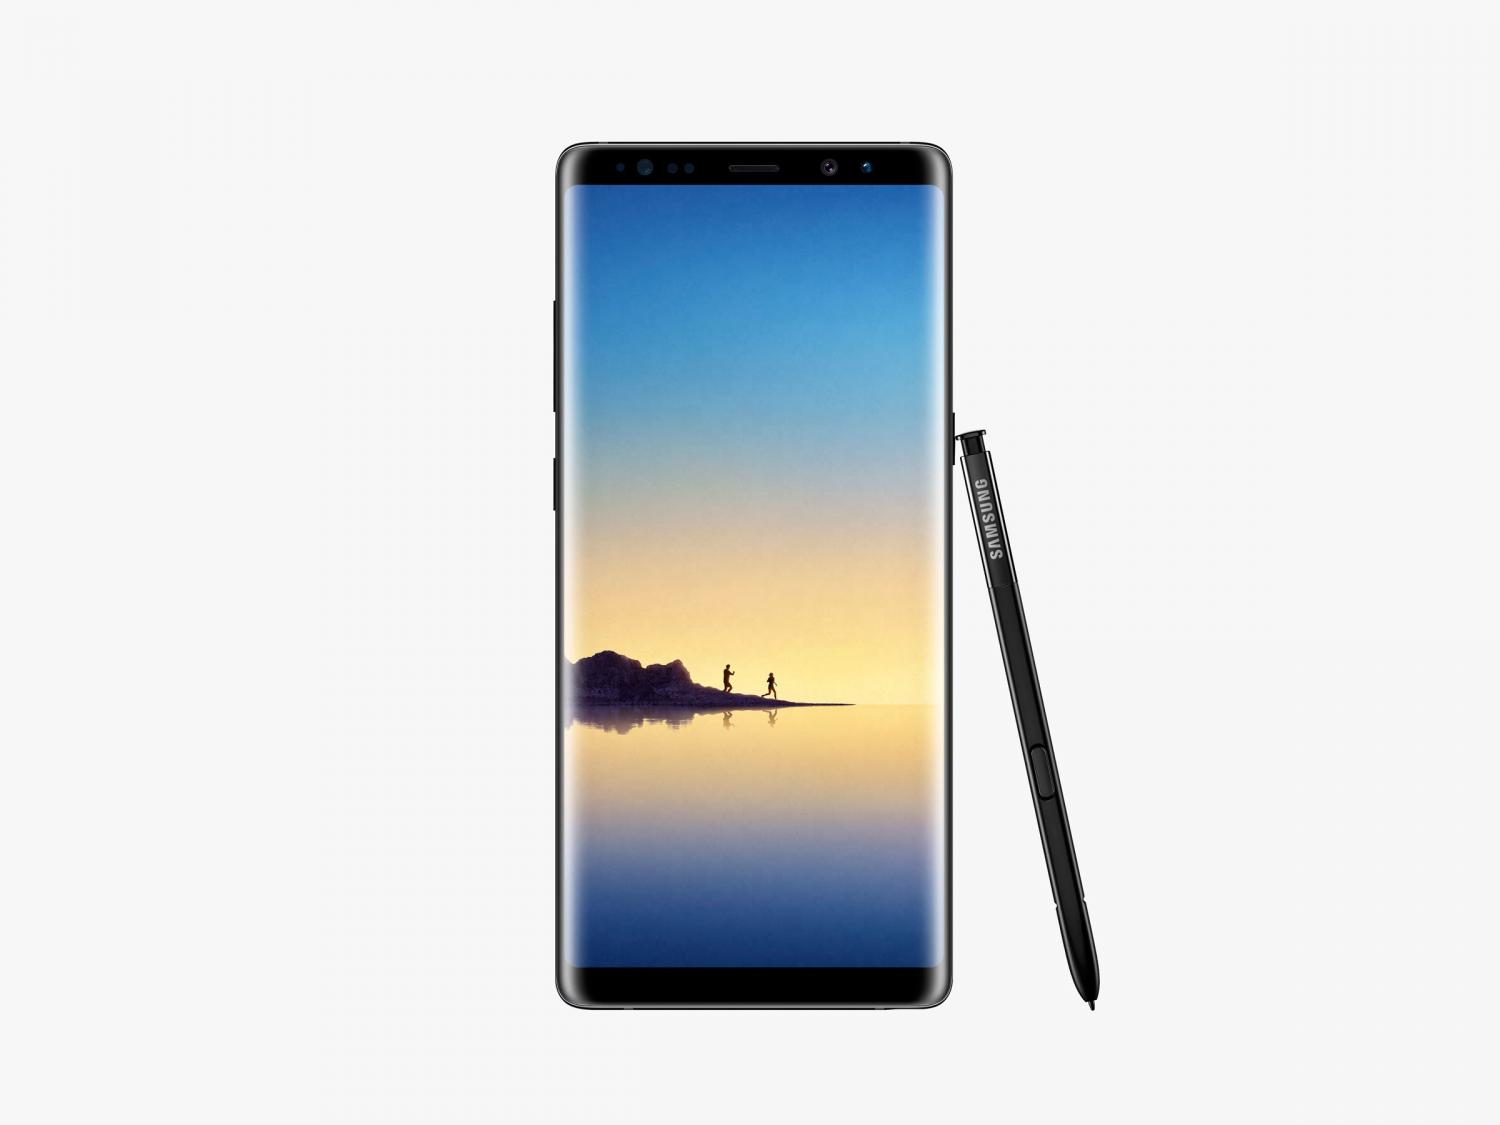 Samsung Galaxy Note 8 launch: What to expect